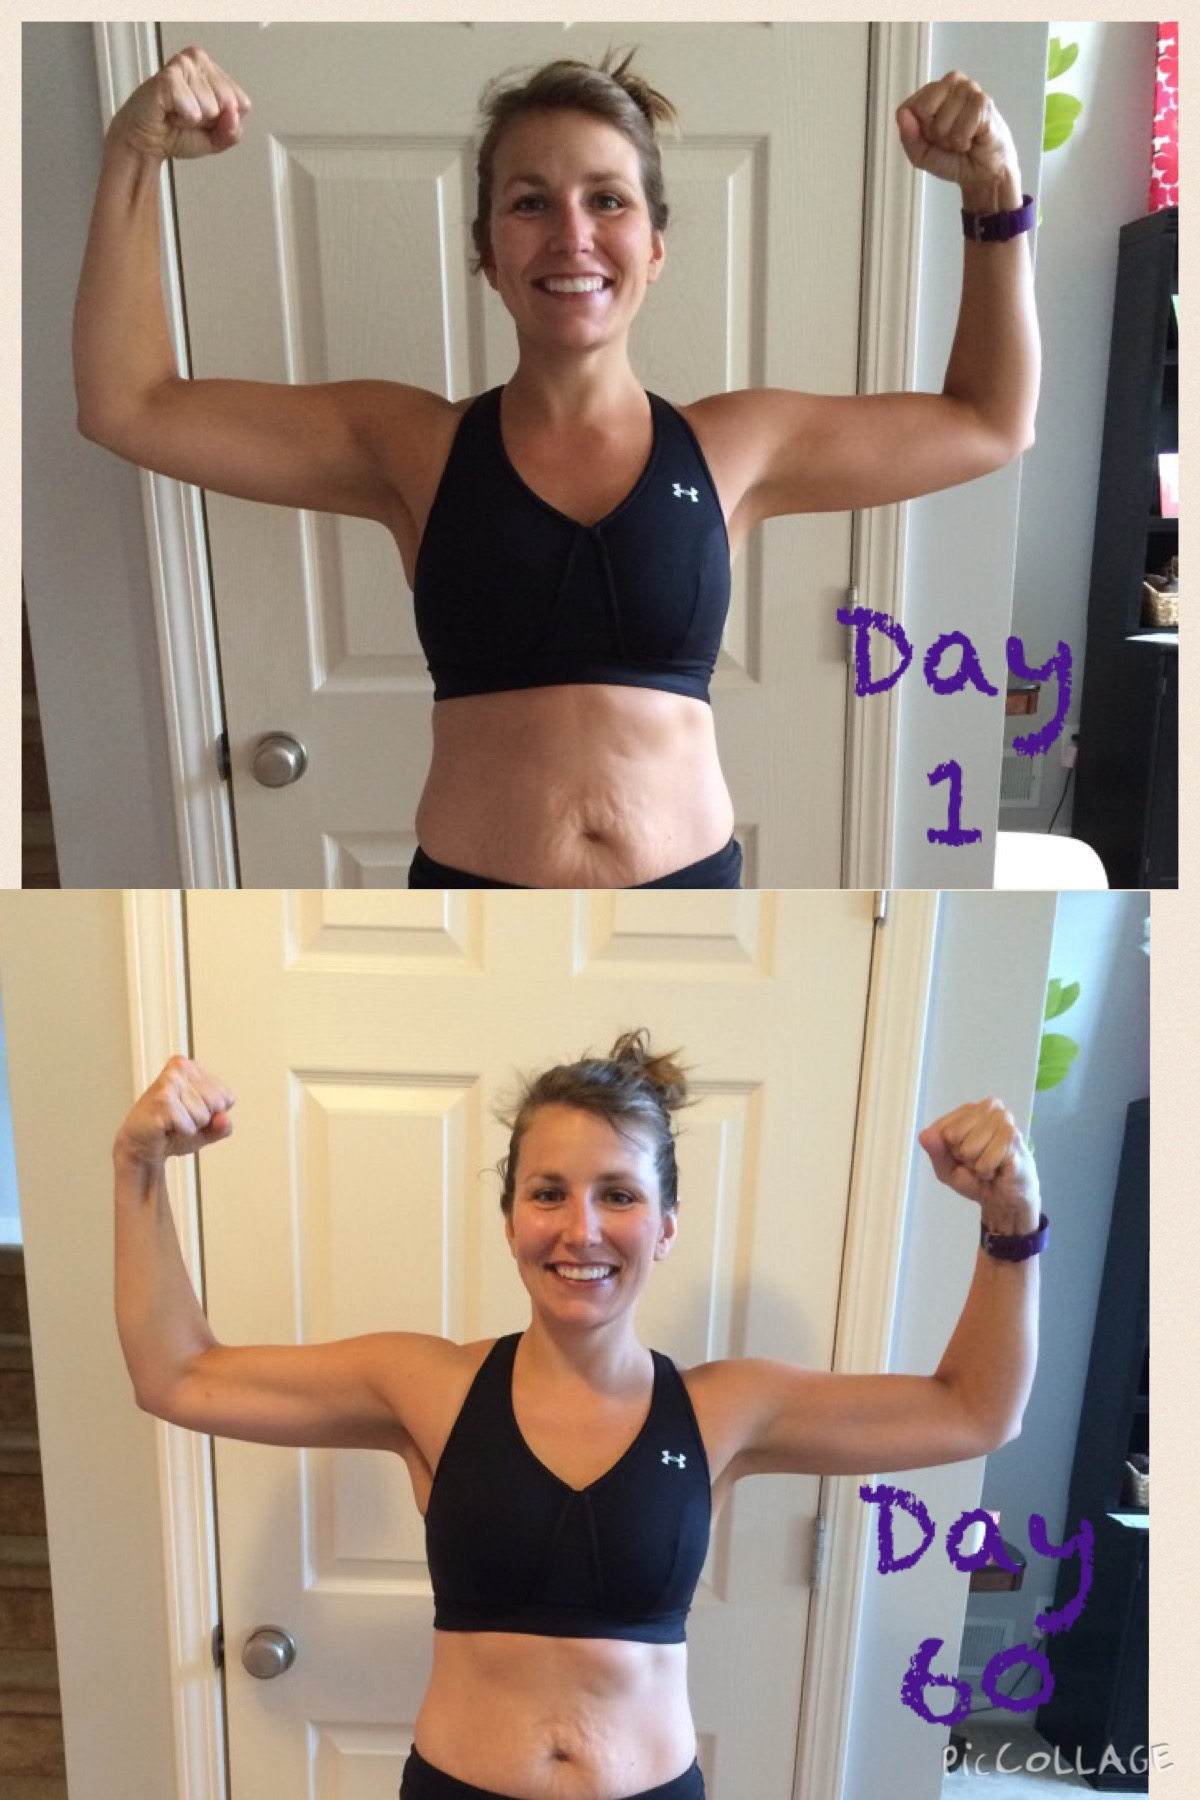 Insanity Max 30 Results Female : insanity, results, female, Results, Third, Round, Insanity, Girls